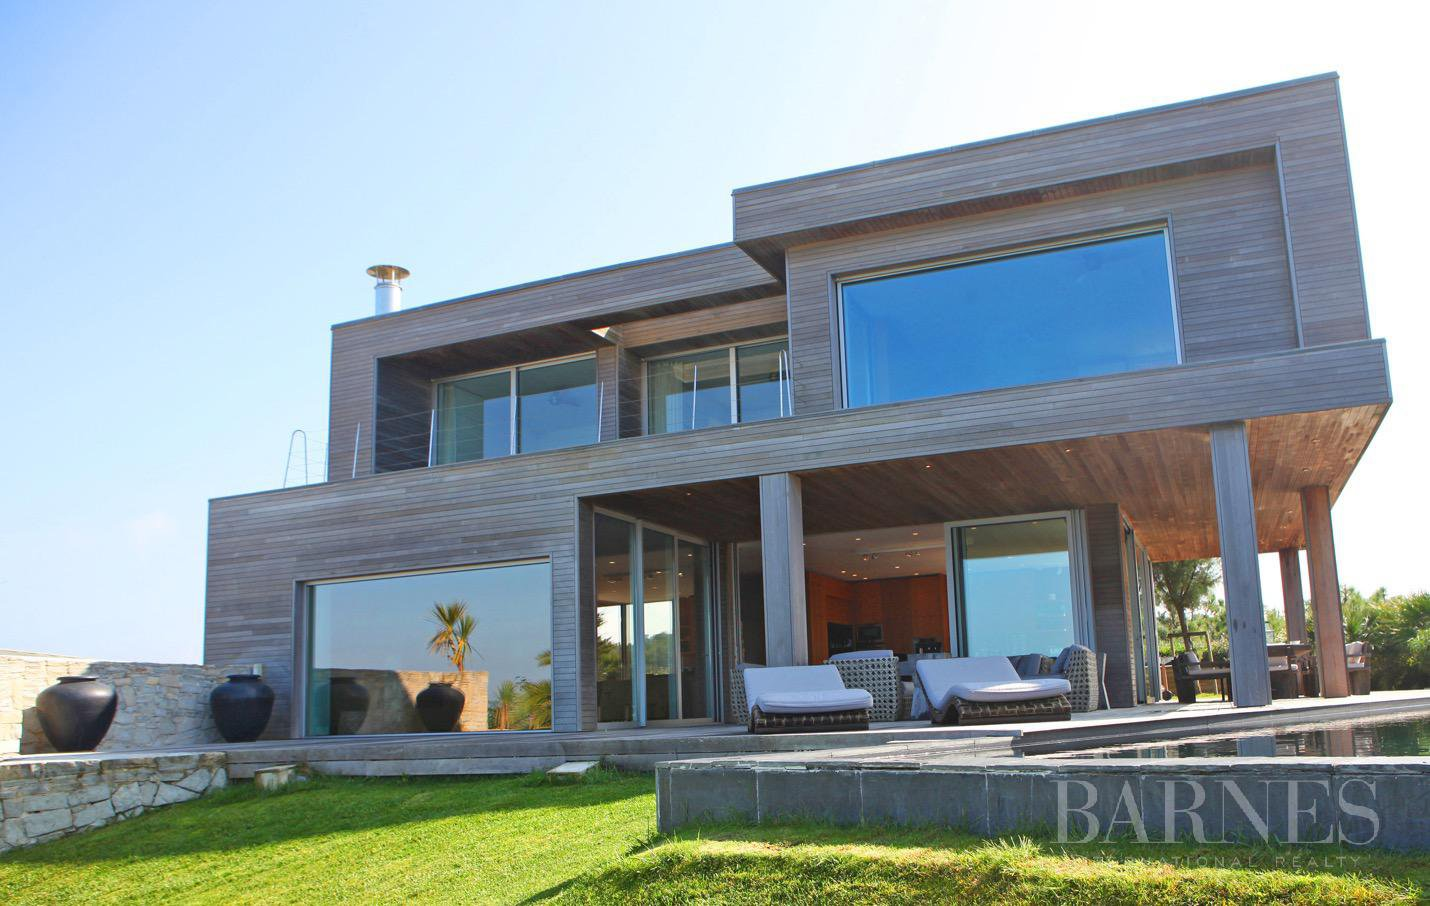 Exceptional contemporary house overlooking the sea, direct access to the beach, swimming-pool terrace sea view, hammam, 5 minutes from Biarritz, Anglet beach by walk, for rent picture 1